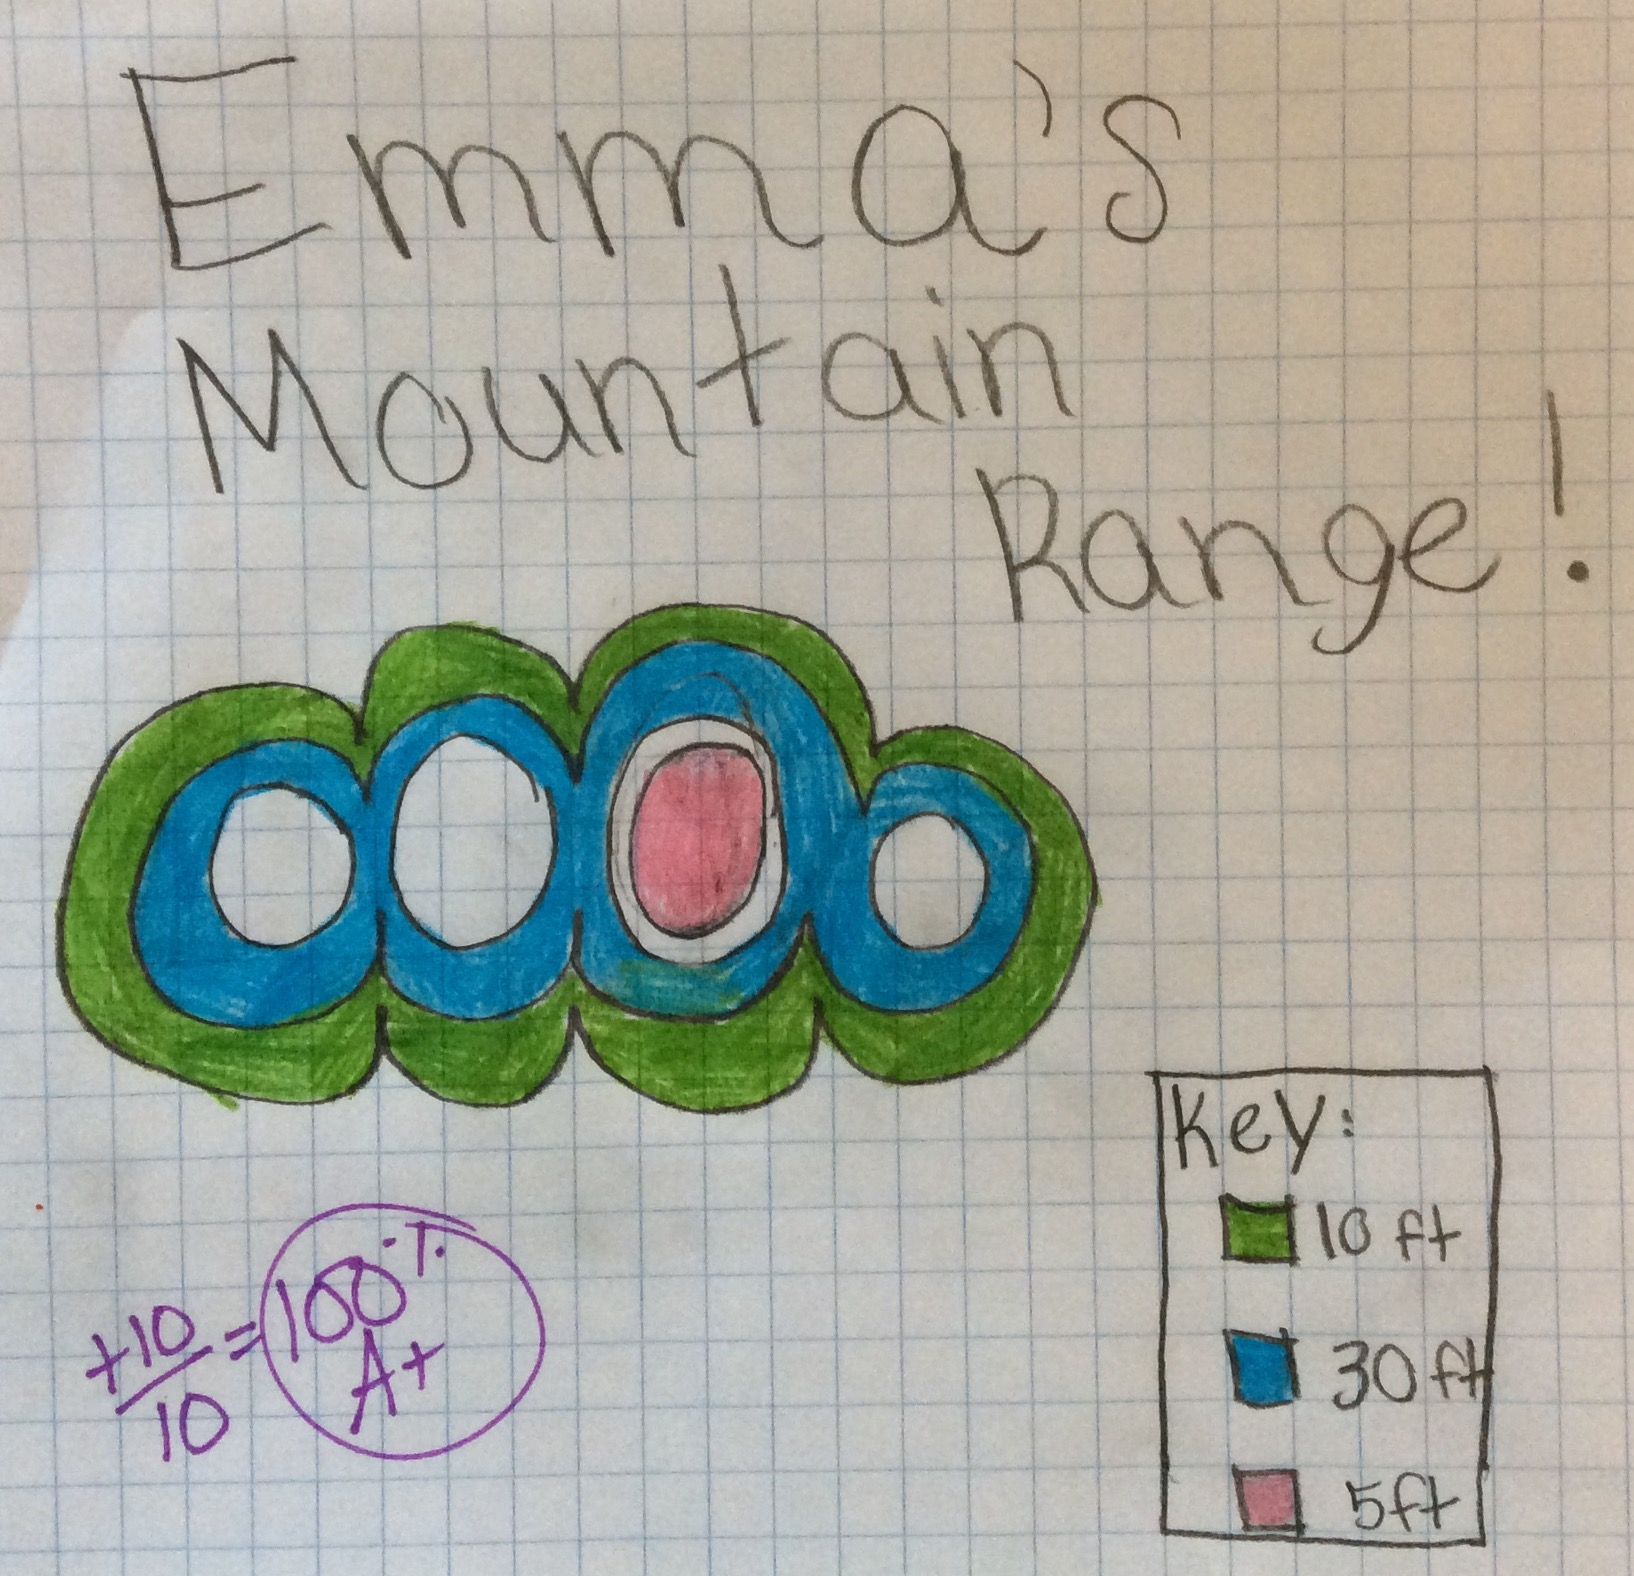 Emma created her topography map based on the shapes of her hand.